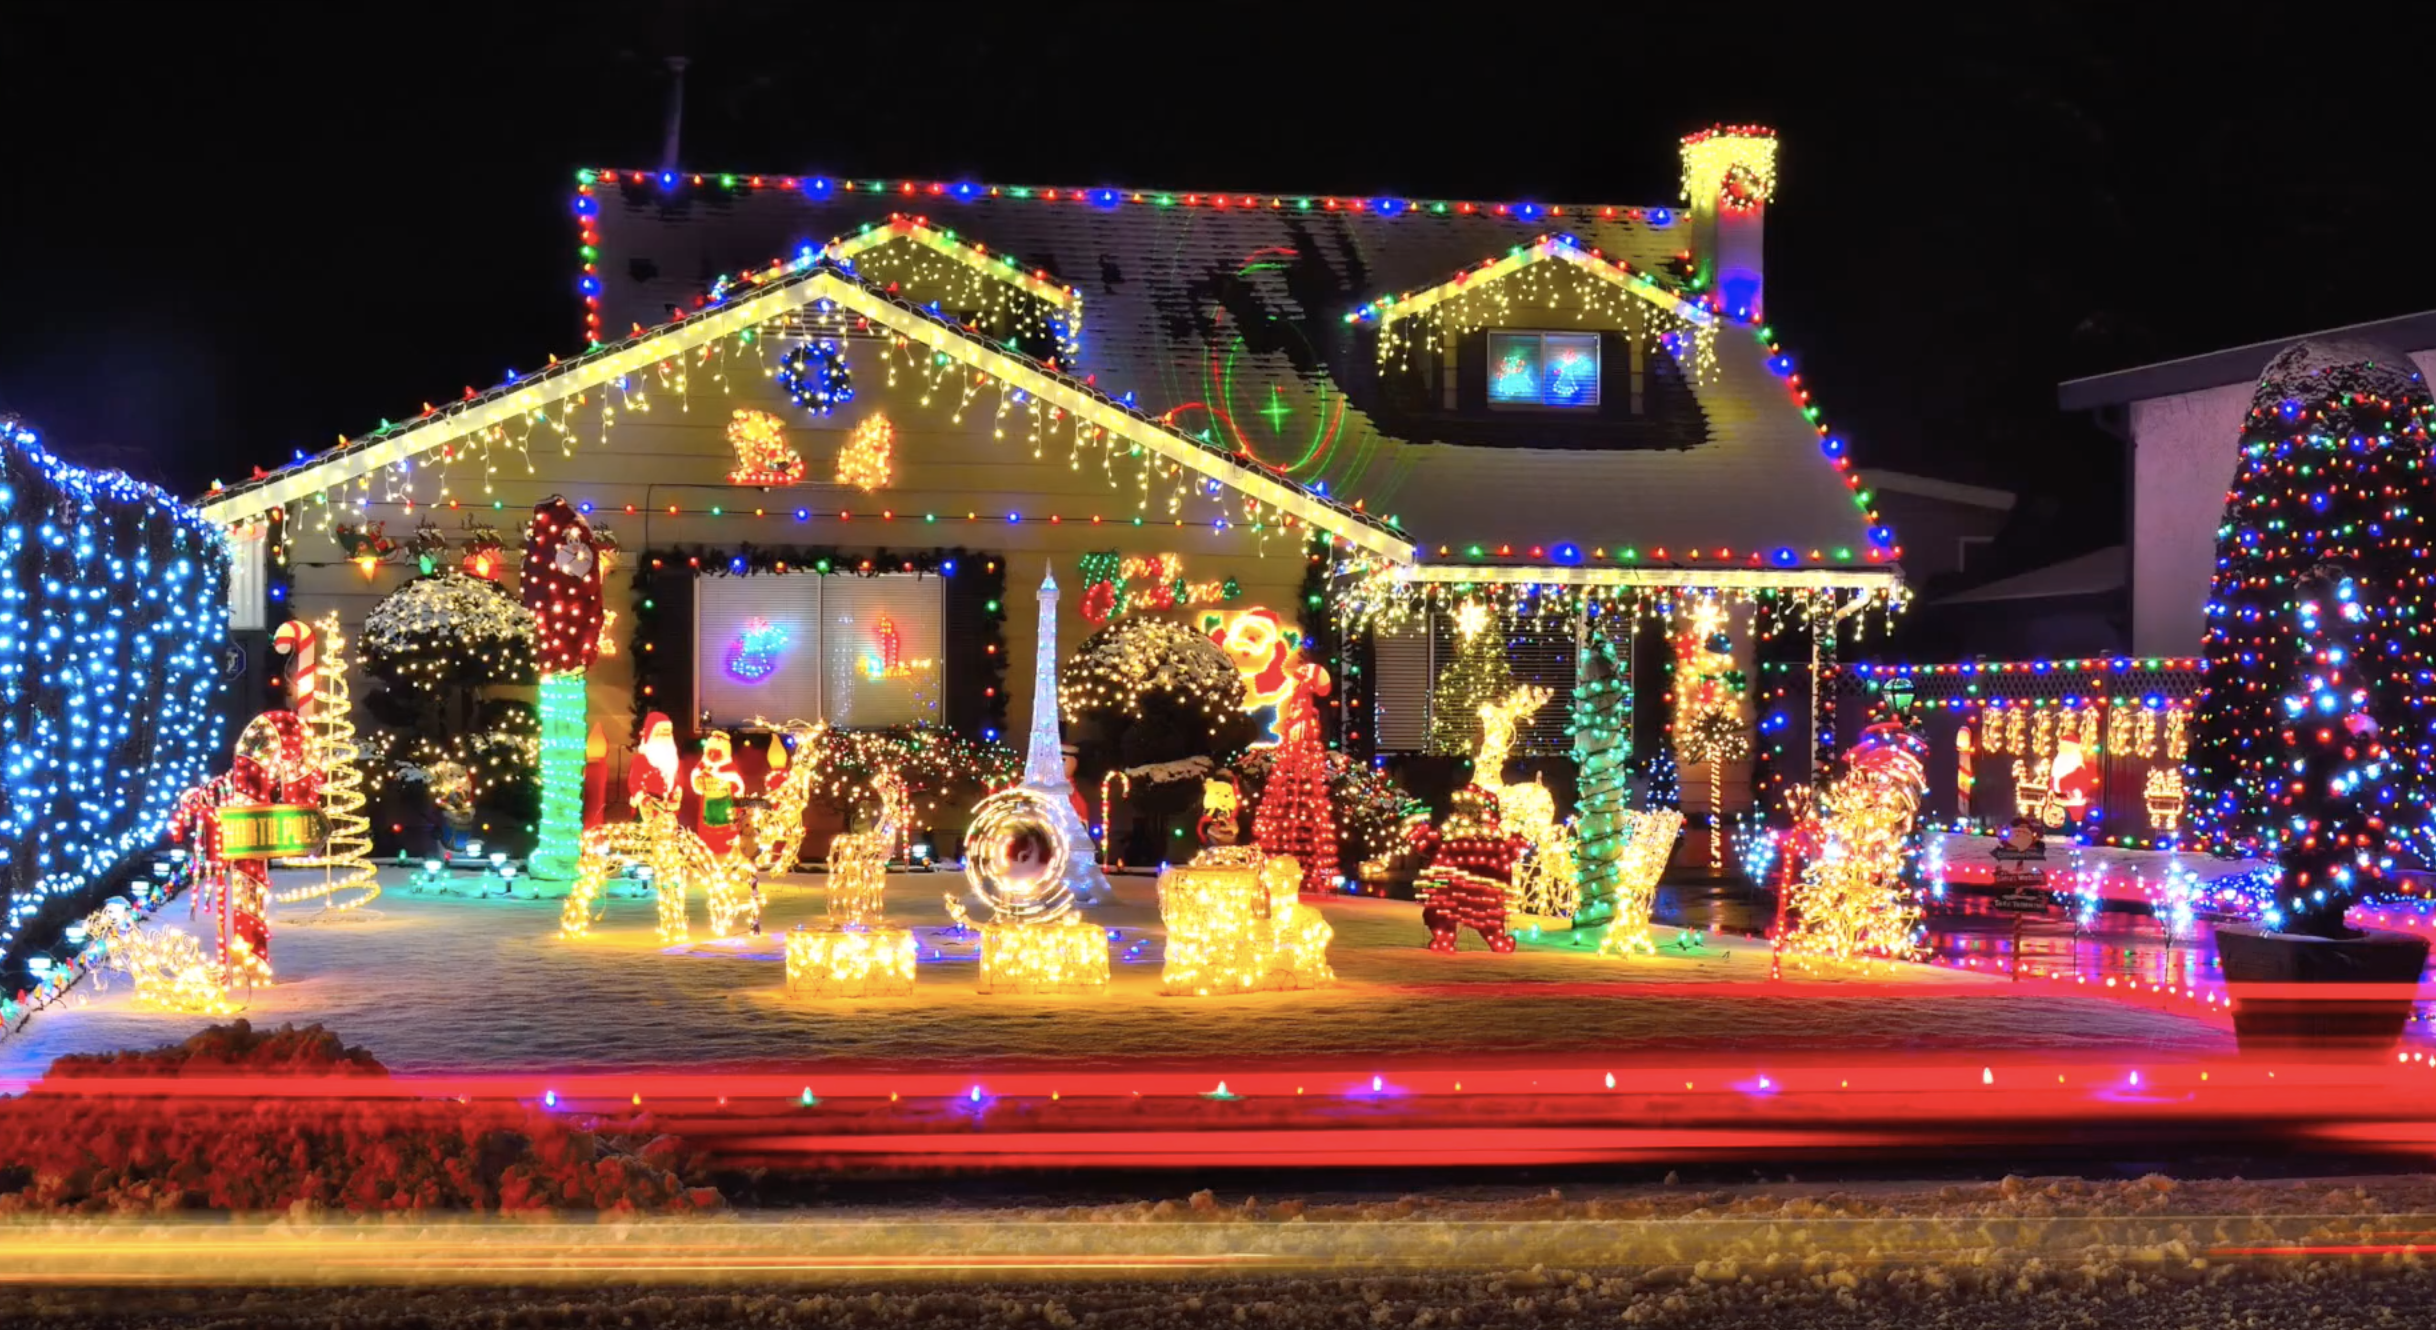 Solve It: Holiday Lighting - Your challenge: To design a solution to lighting up a holiday display when you are not close to a power source.